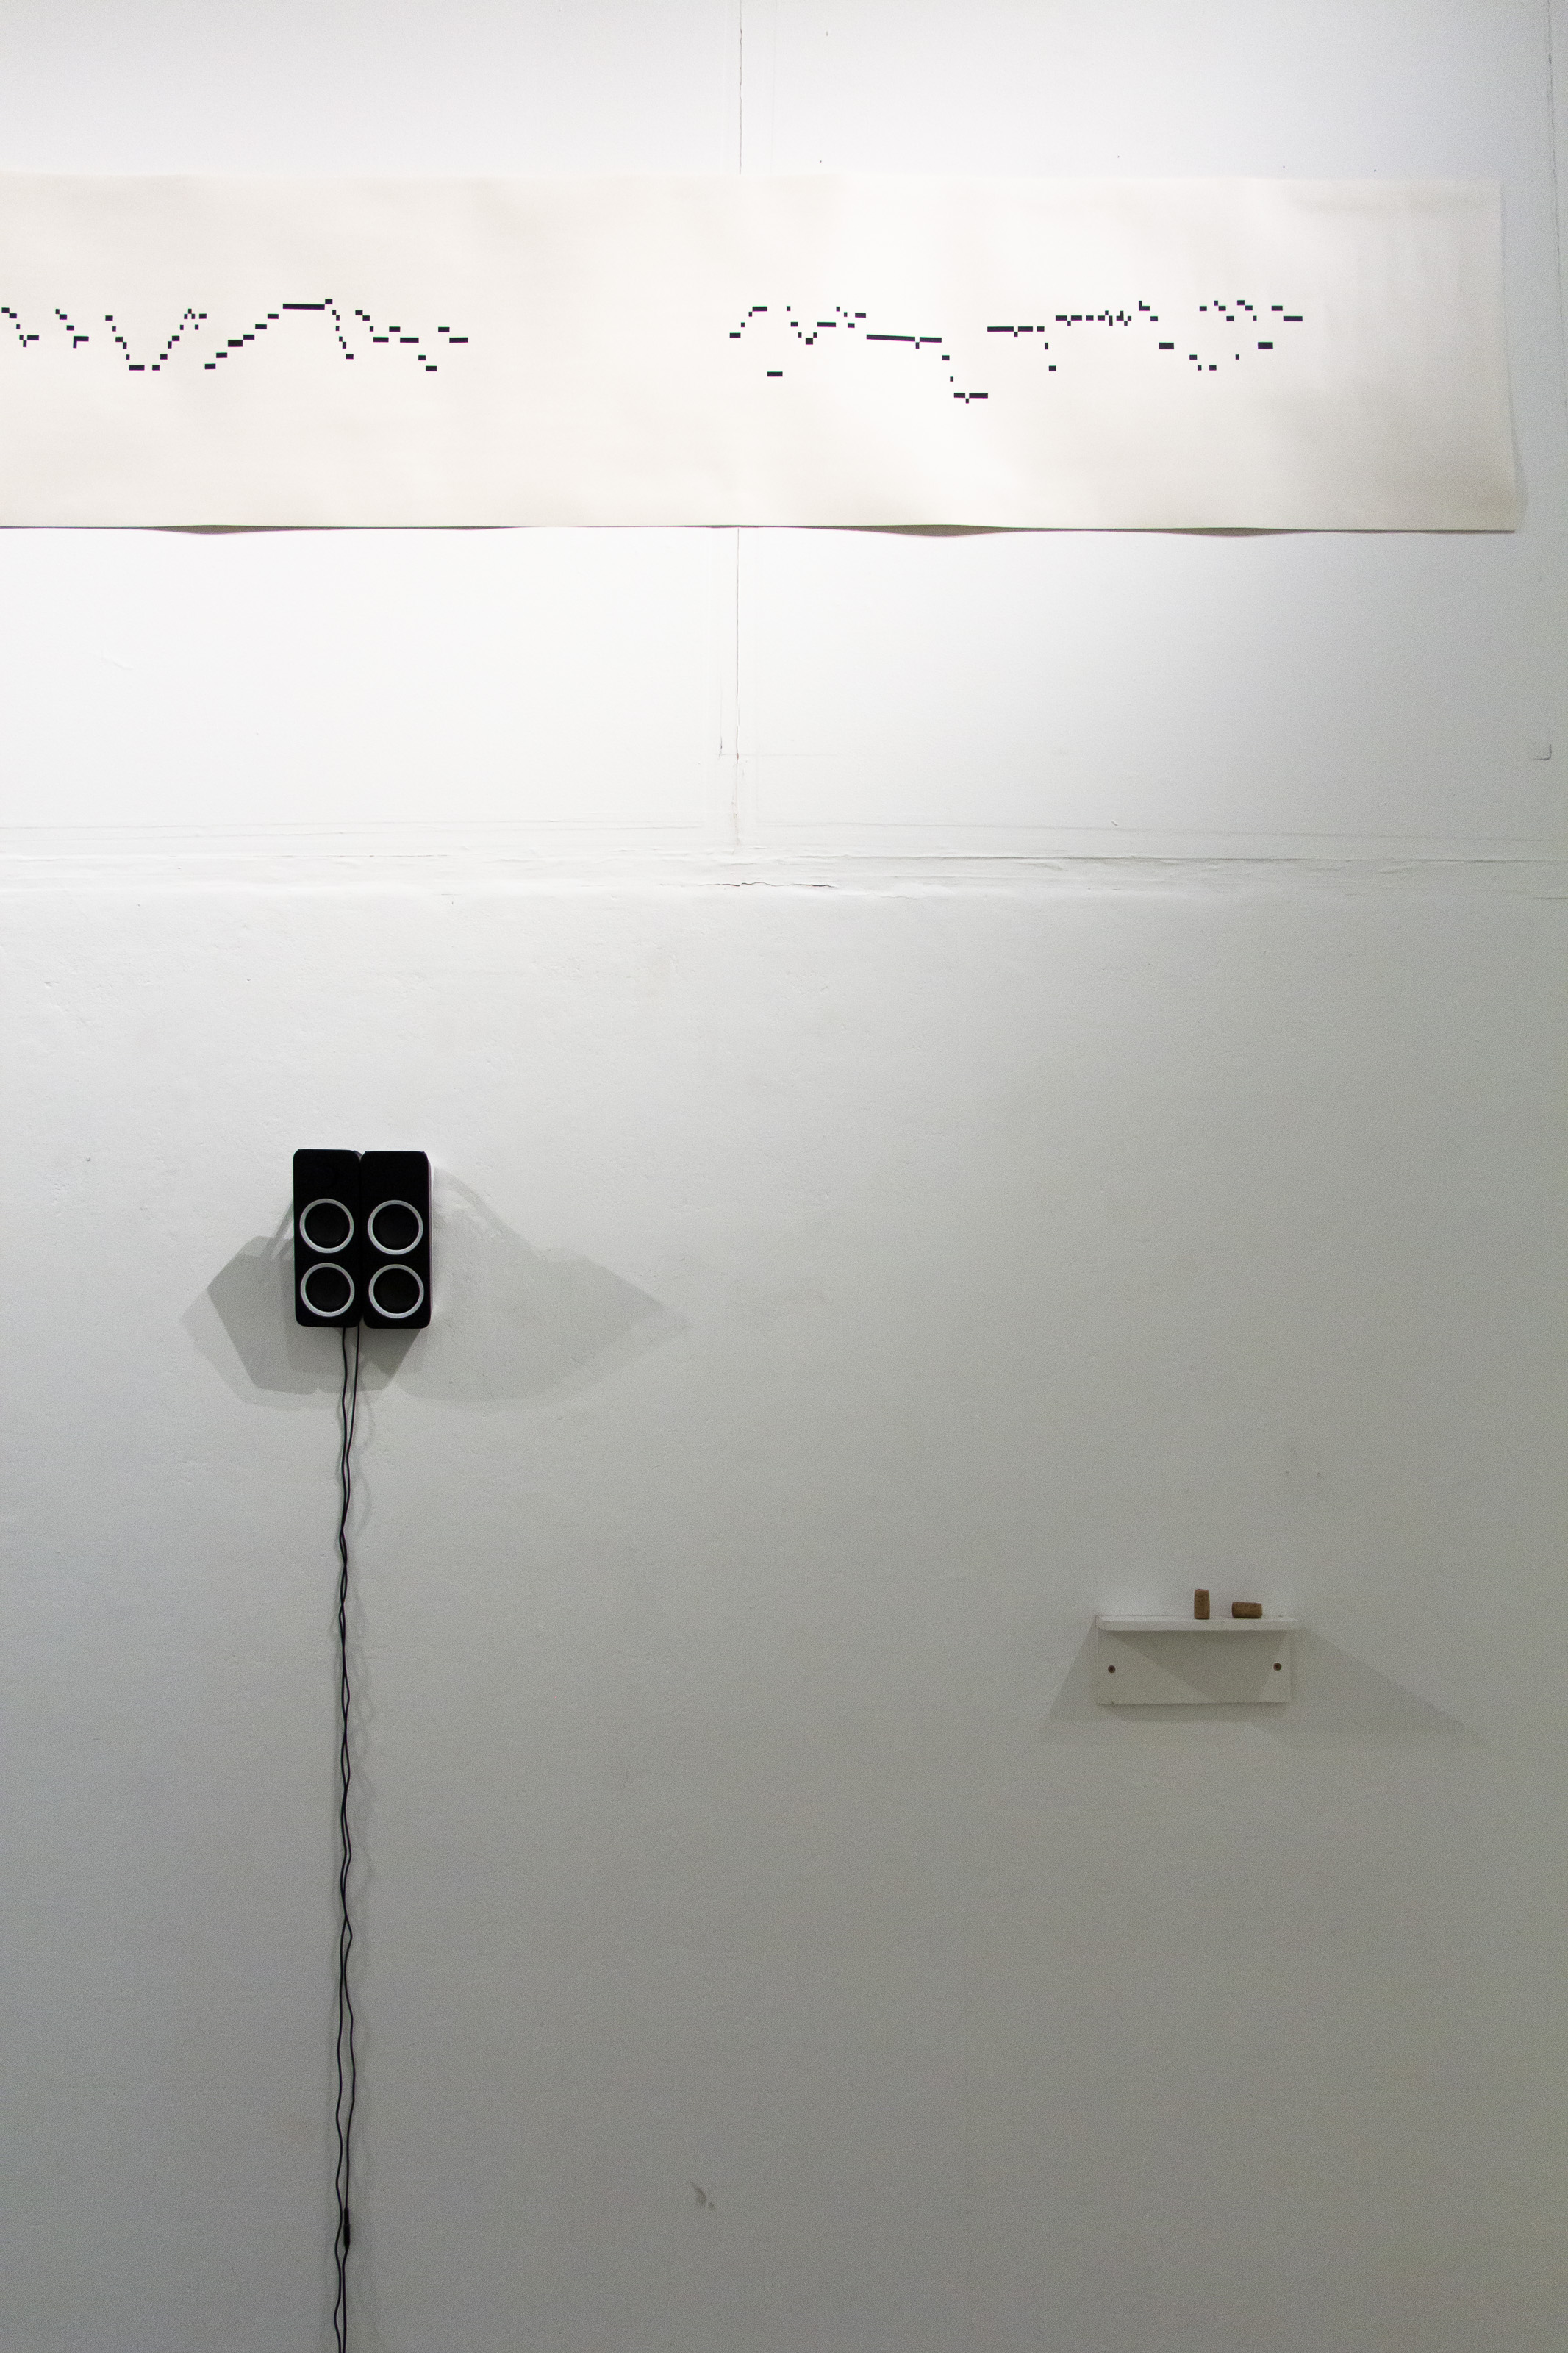 """Installation view of """"Sirens in the Blank"""" showing work by Chris Taylor and Judith Deschamps, 2018"""